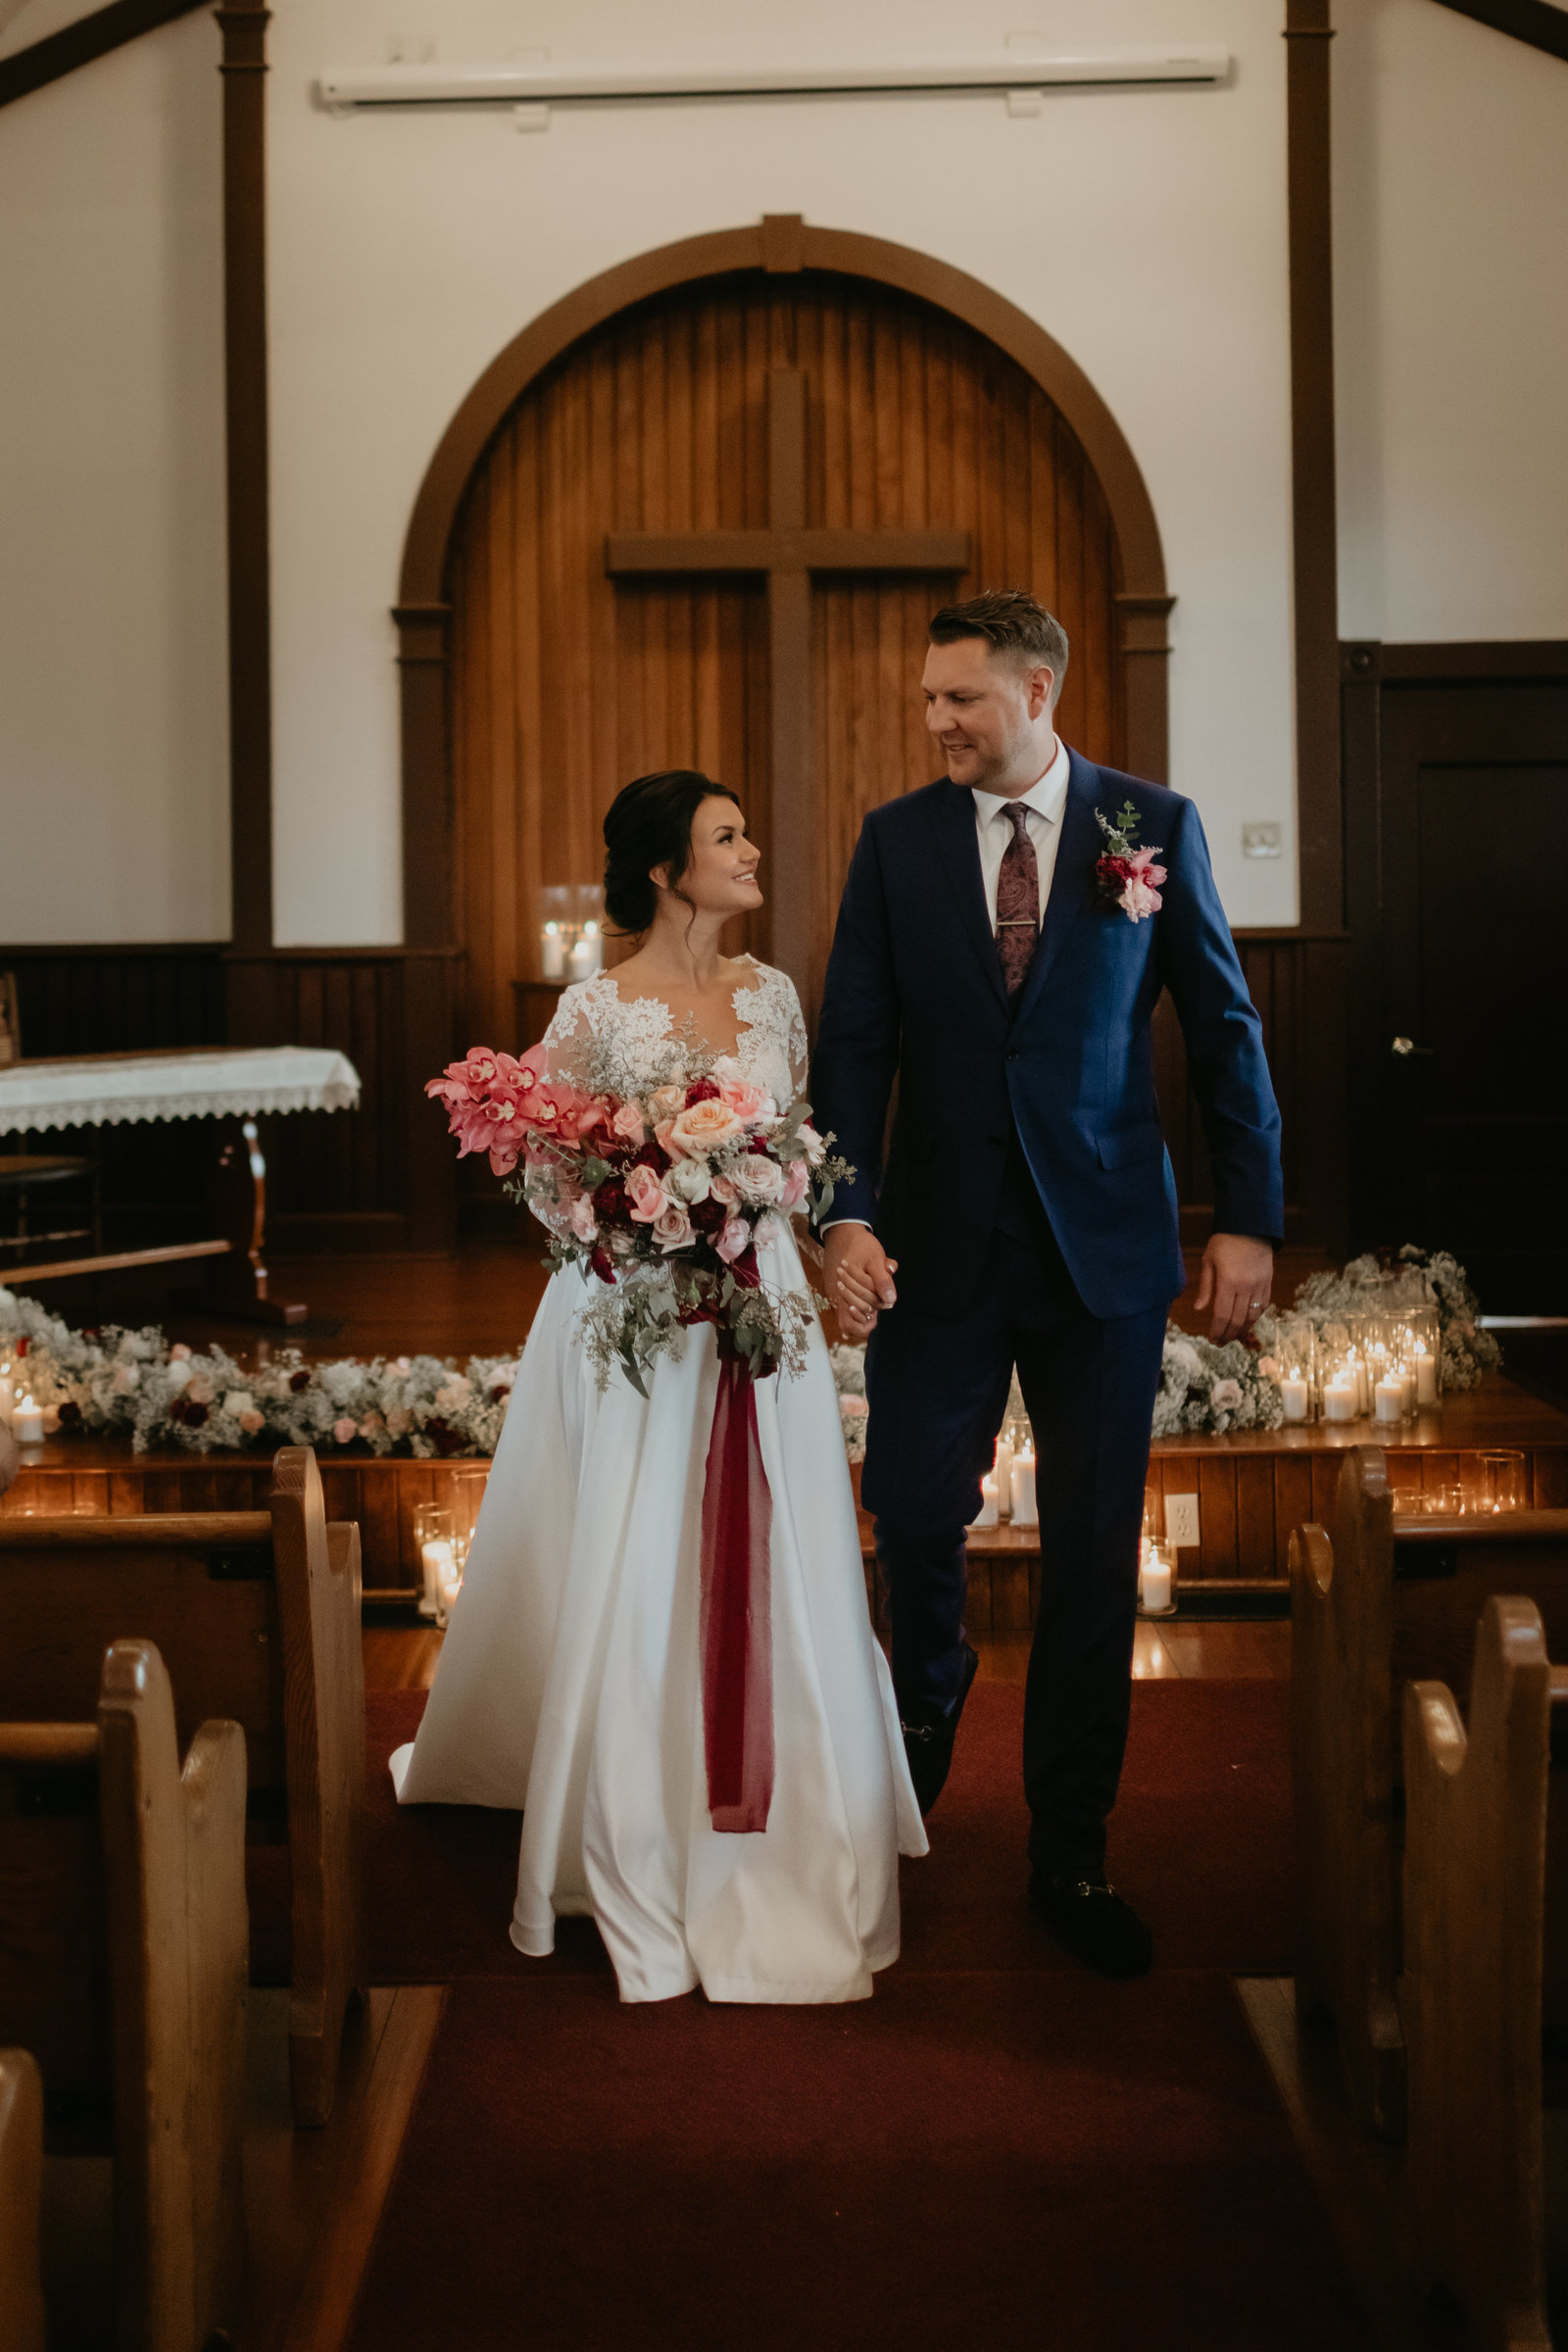 FORT-LANGLEY-MILNER-CHAPPEL-WEDDING-MEGHAN-HEMSTRA-PHOTOGRAPHY-2